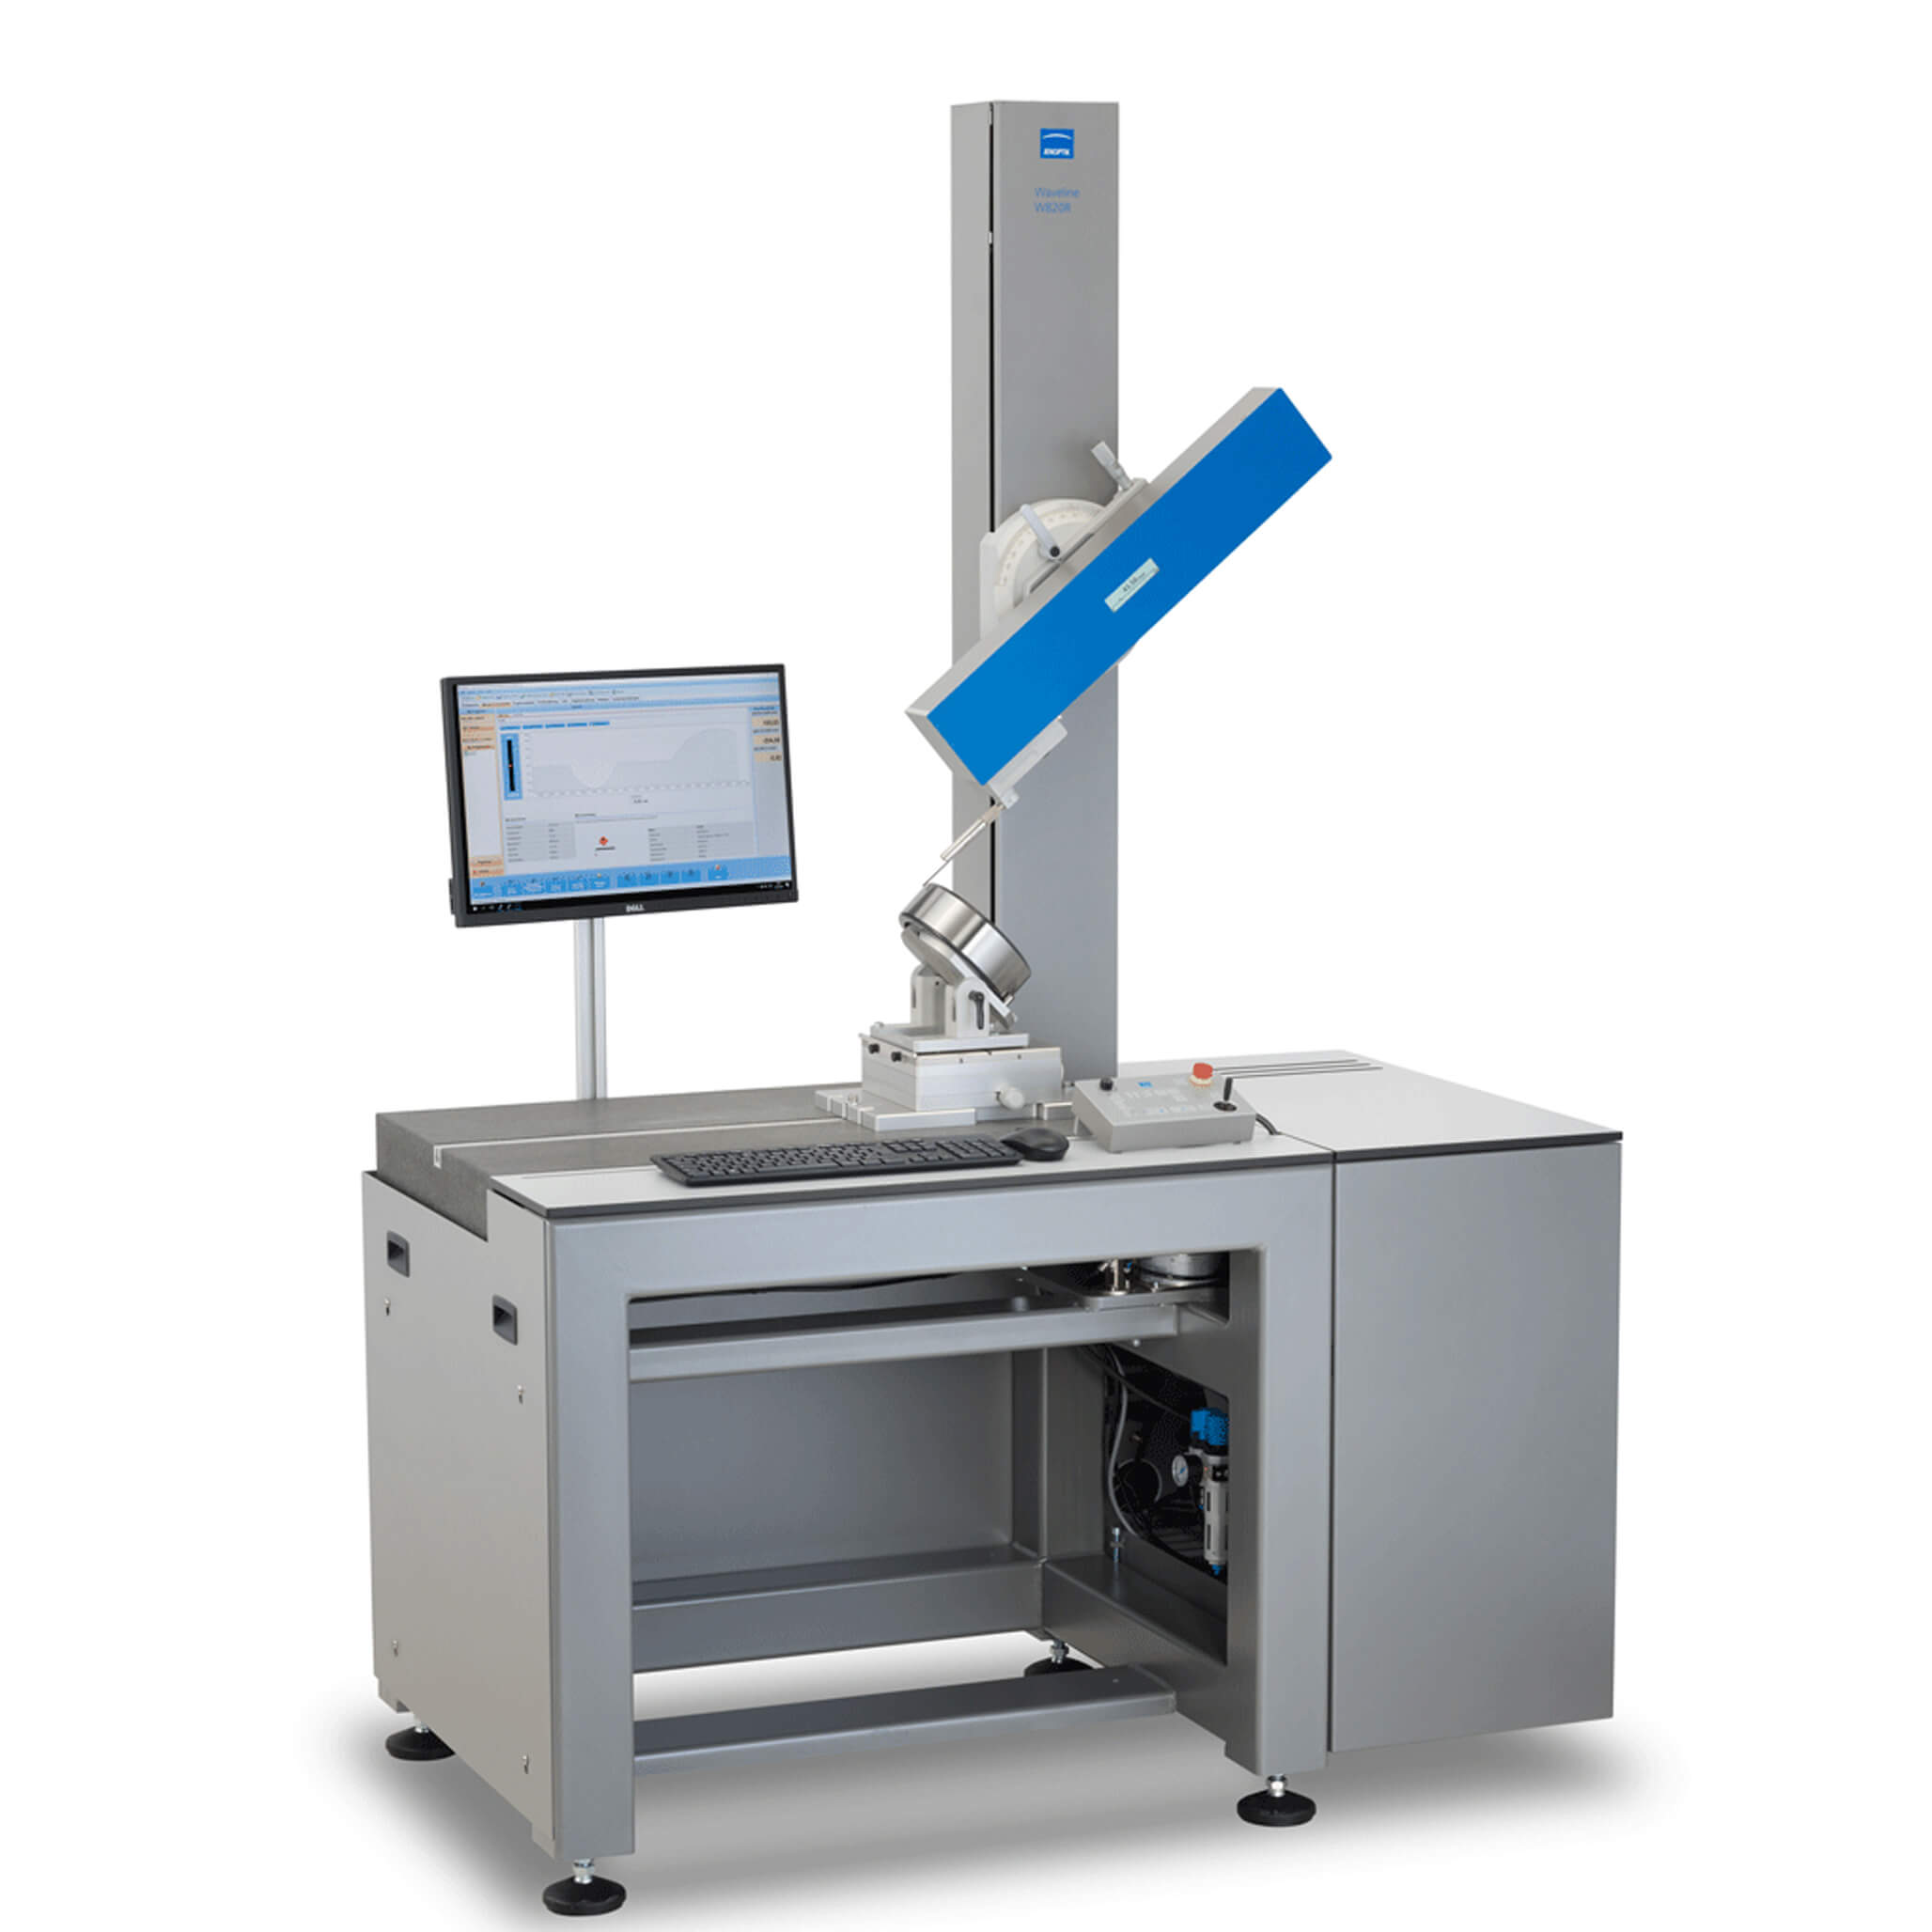 W800 roughness and contour measurement